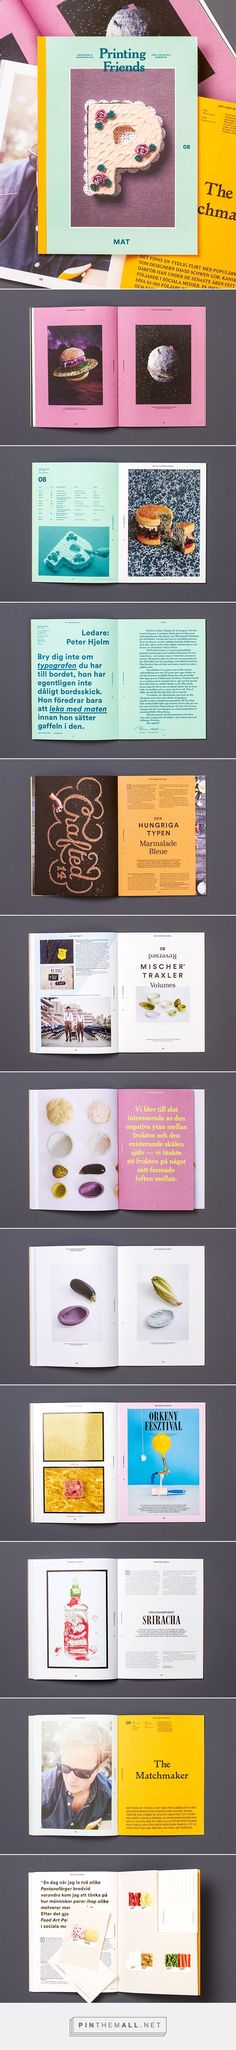 Printing Friends Magazine No 8 – Food on Behance